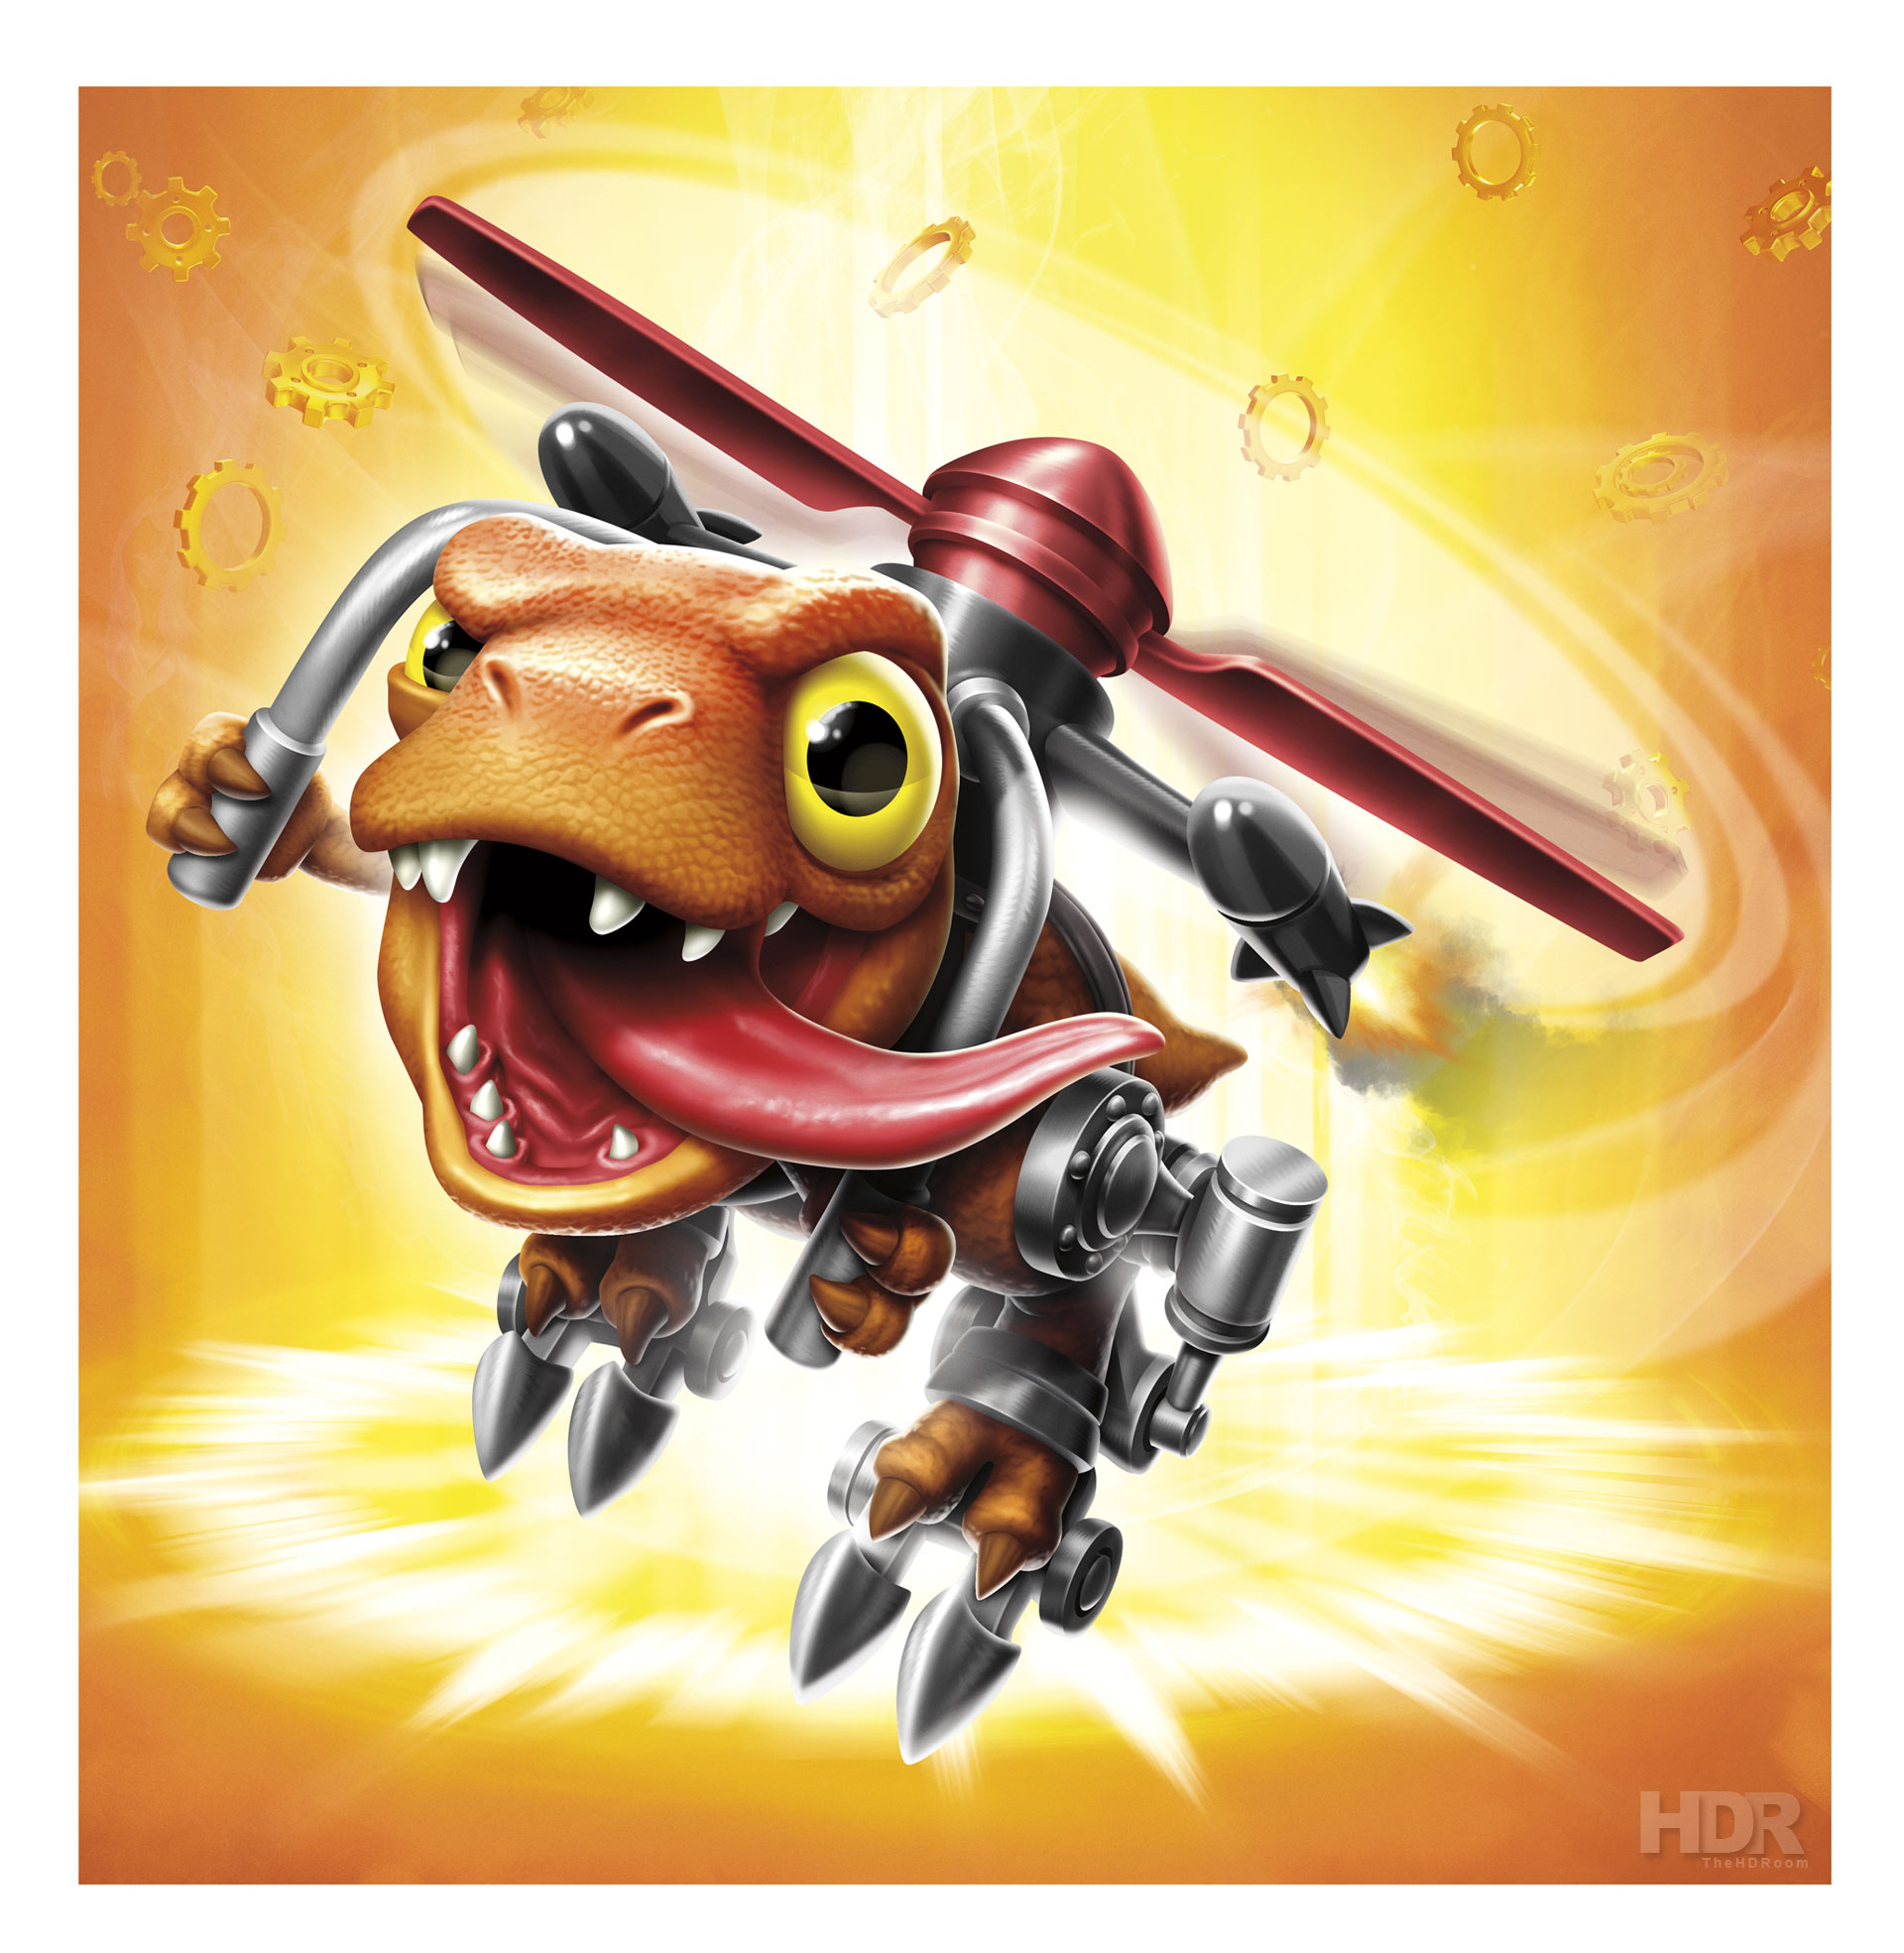 Skylanders Trap Team Revealed: Details, Screenshots, Characters, Release Date and More